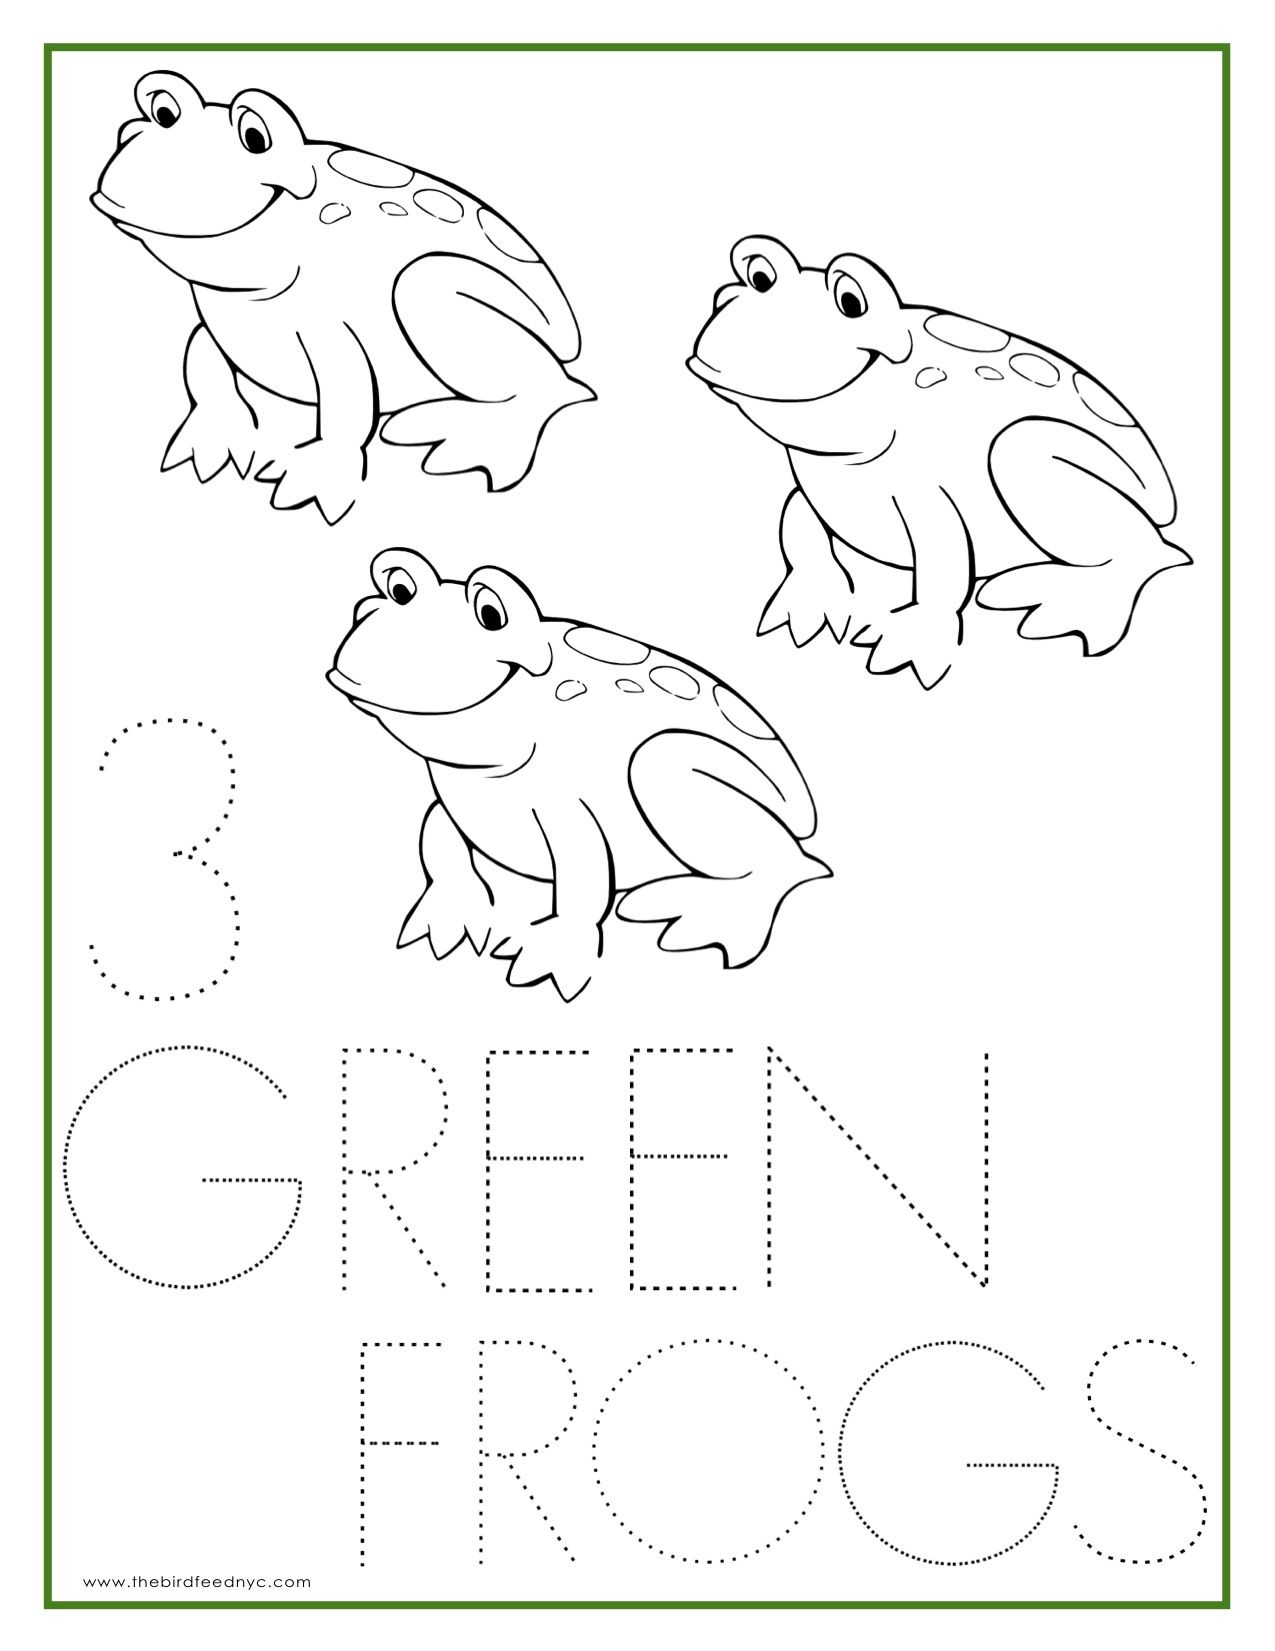 Number Coloring Sheet 3 Green Frogs